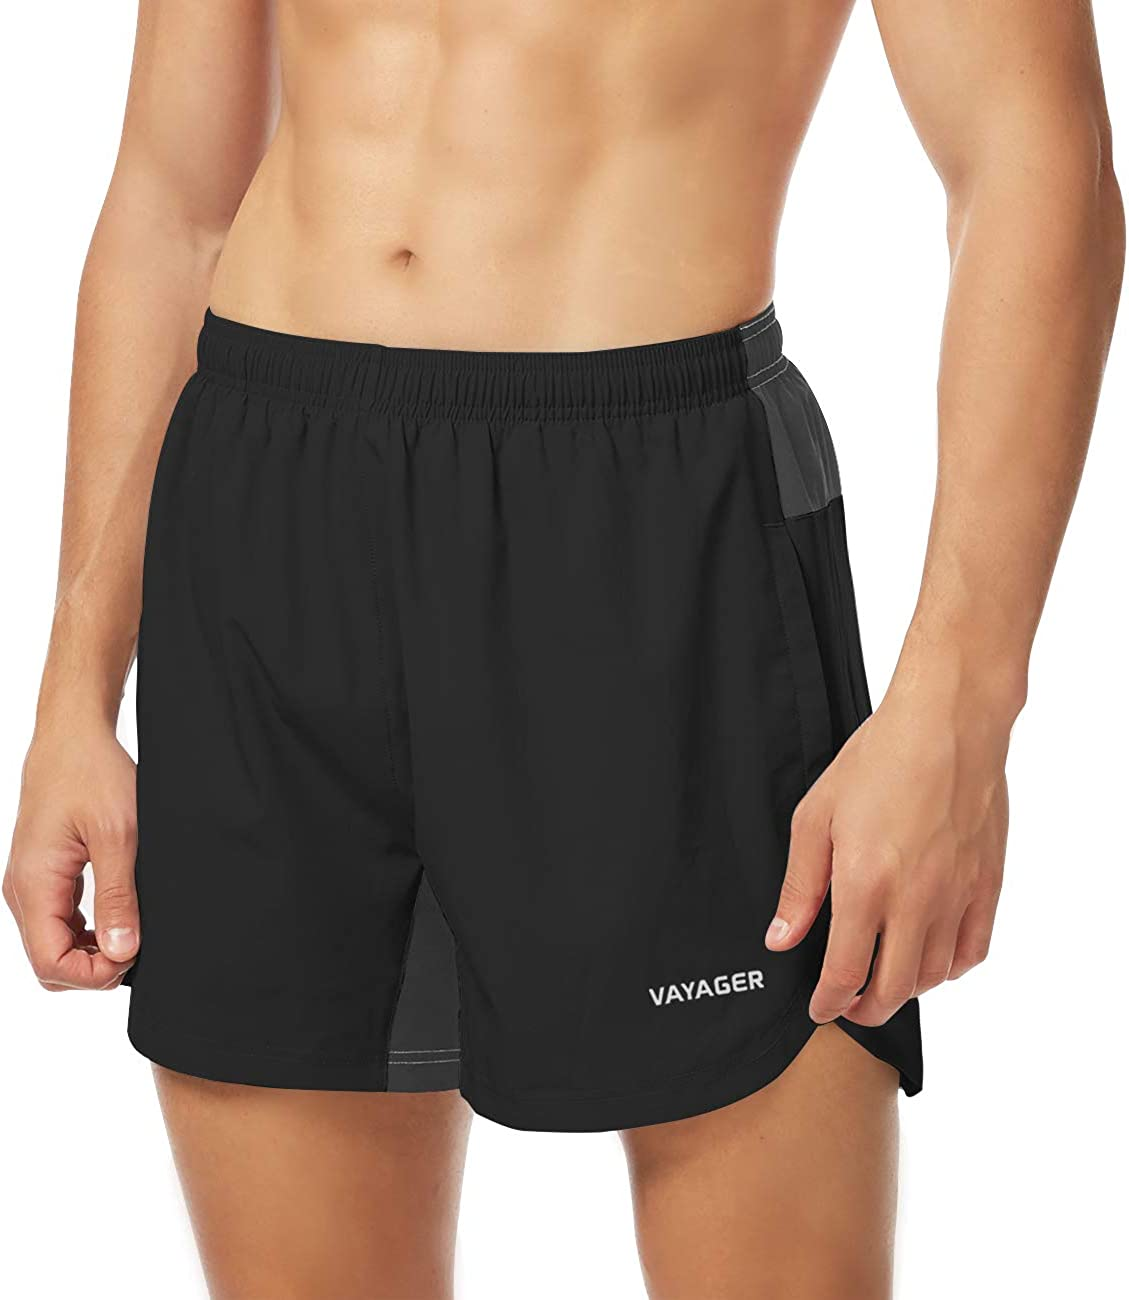 VAYAGER Men's Product 5 Inch Running Sales for sale Drying Shorts Athletic Workou Quick